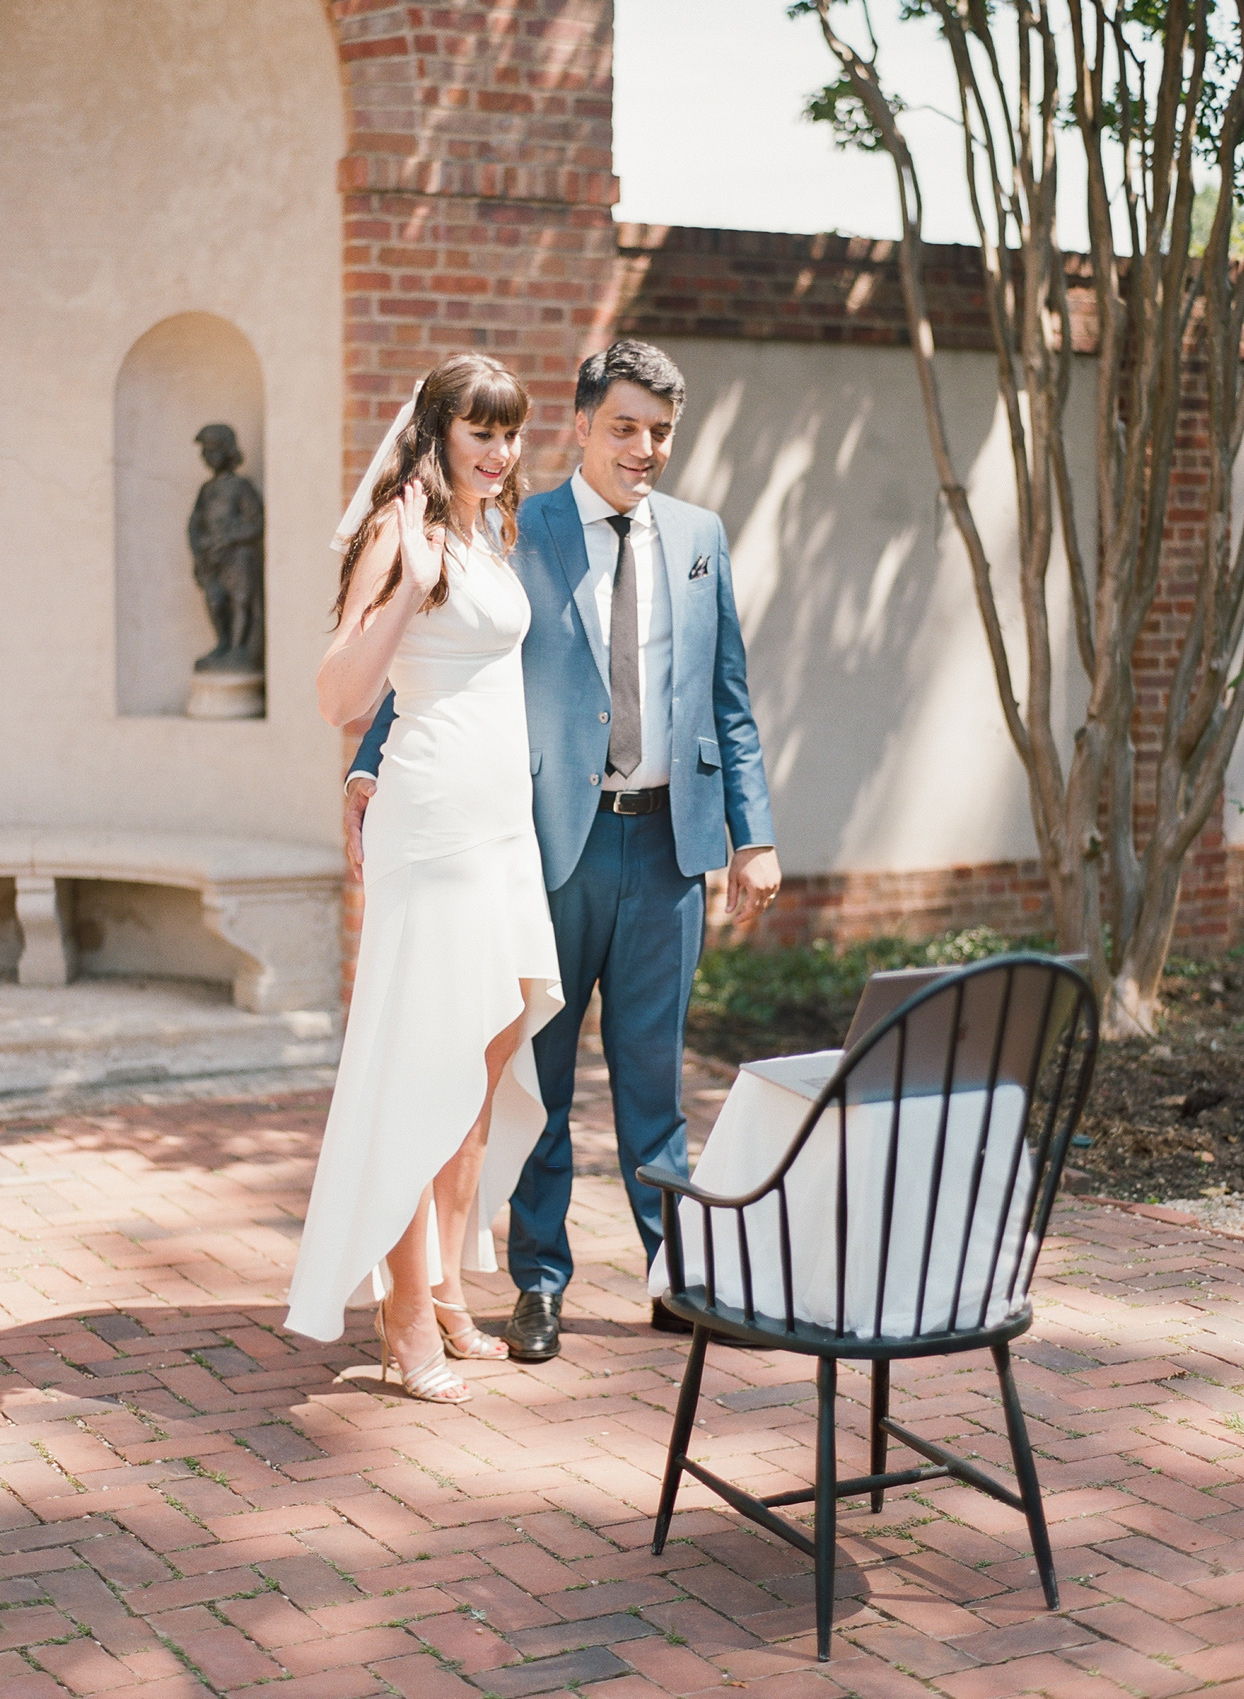 bride and groom waving at laptop propped up on chair